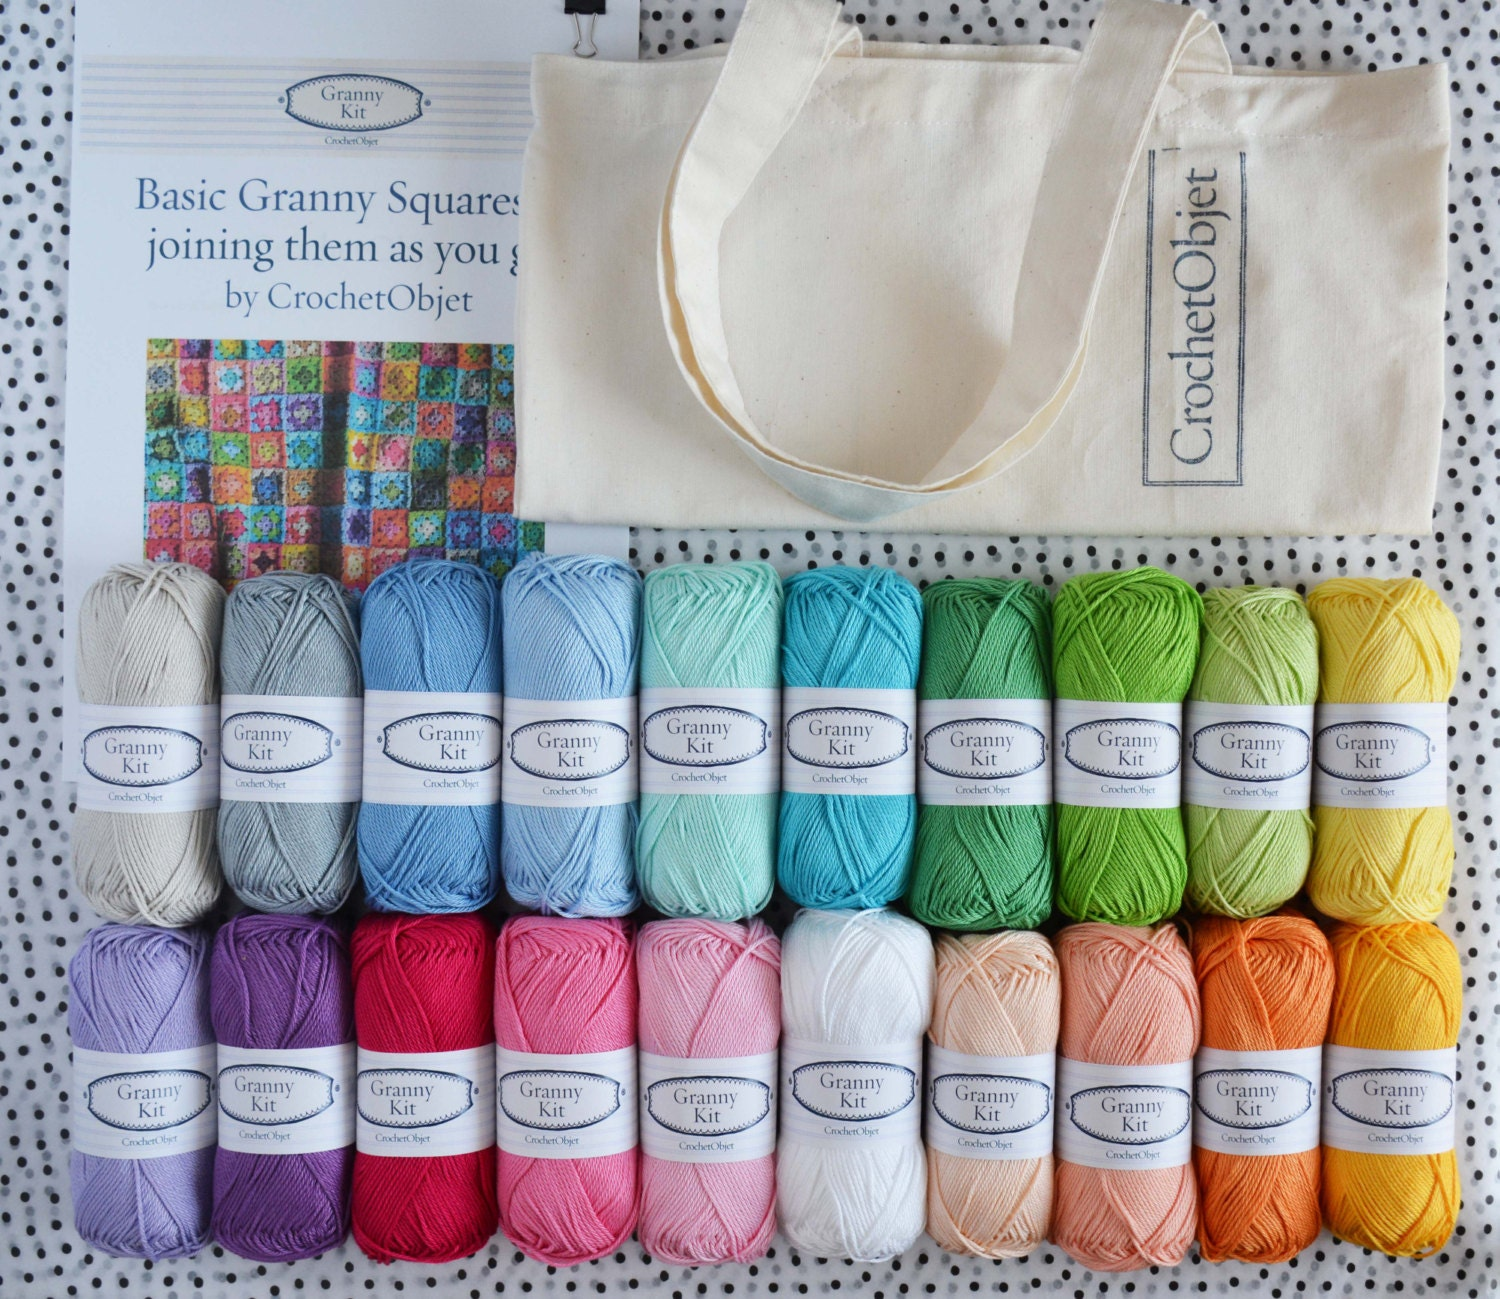 Knitting Kits For Beginners Uk : Crochet beginners kit granny square diy pattern with